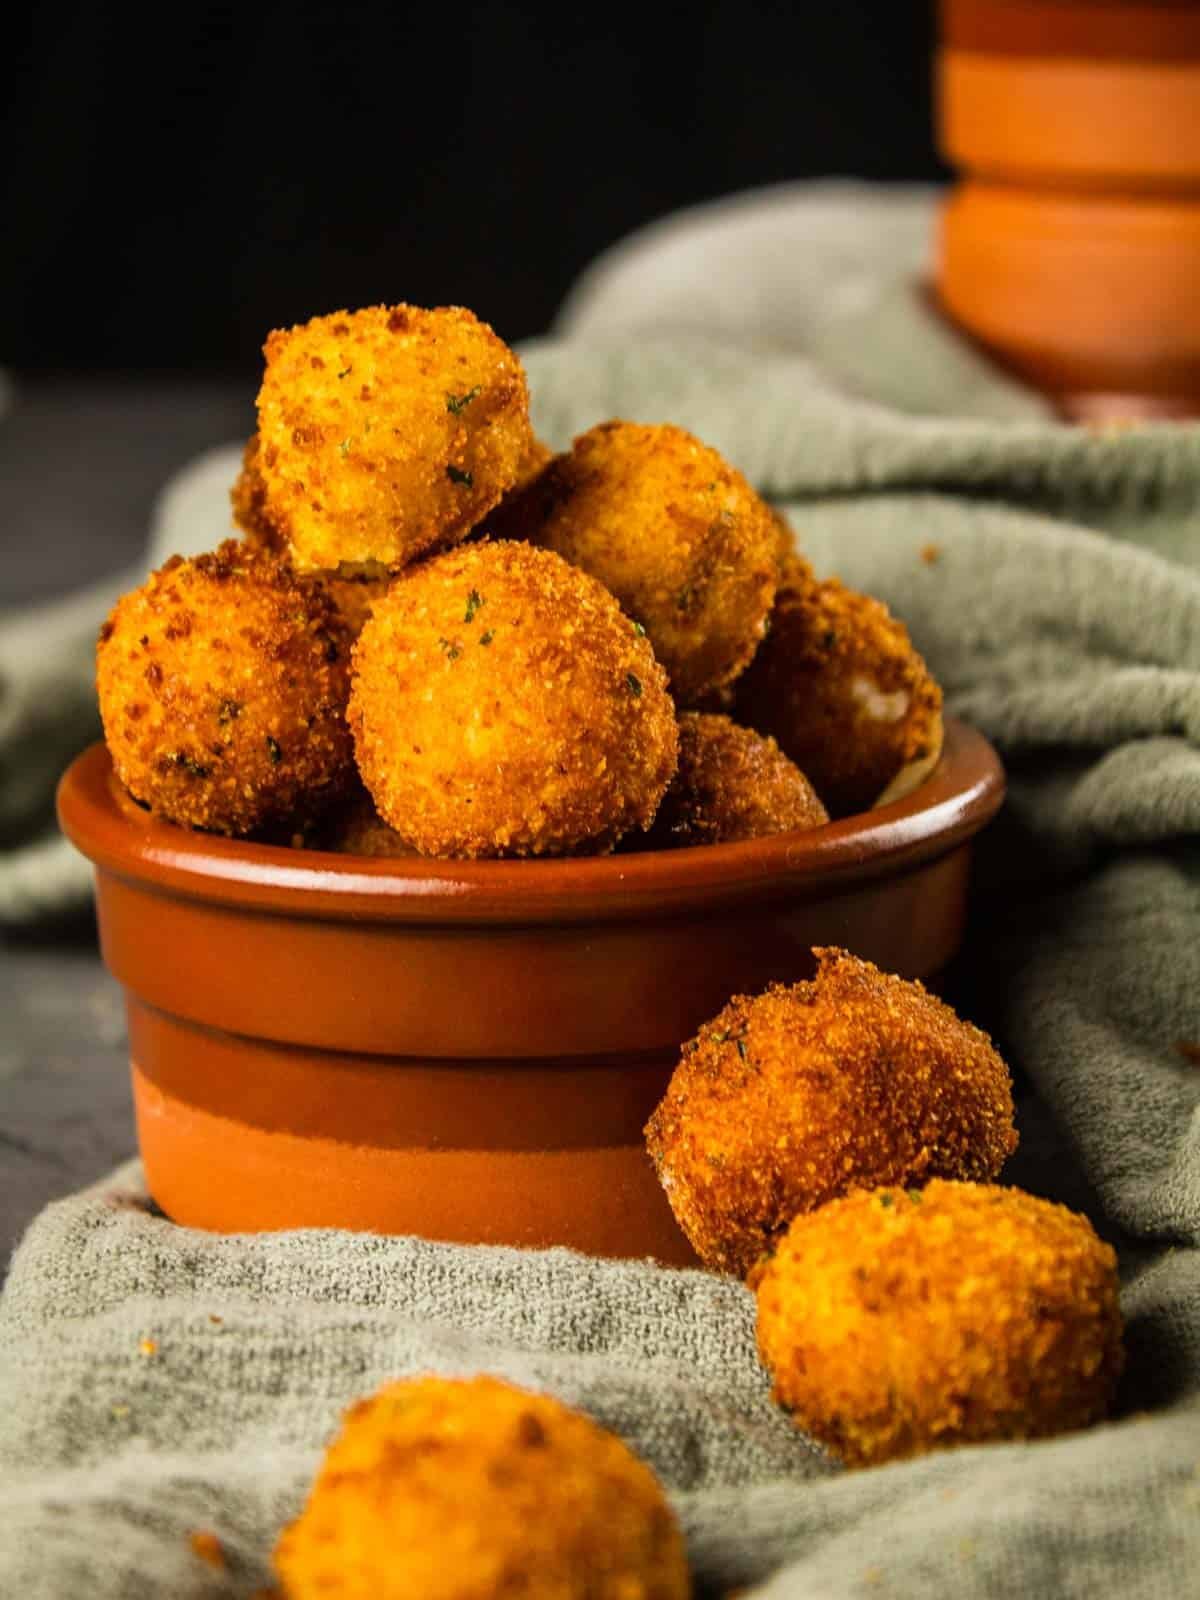 fried goat cheese balls in a terracotta container